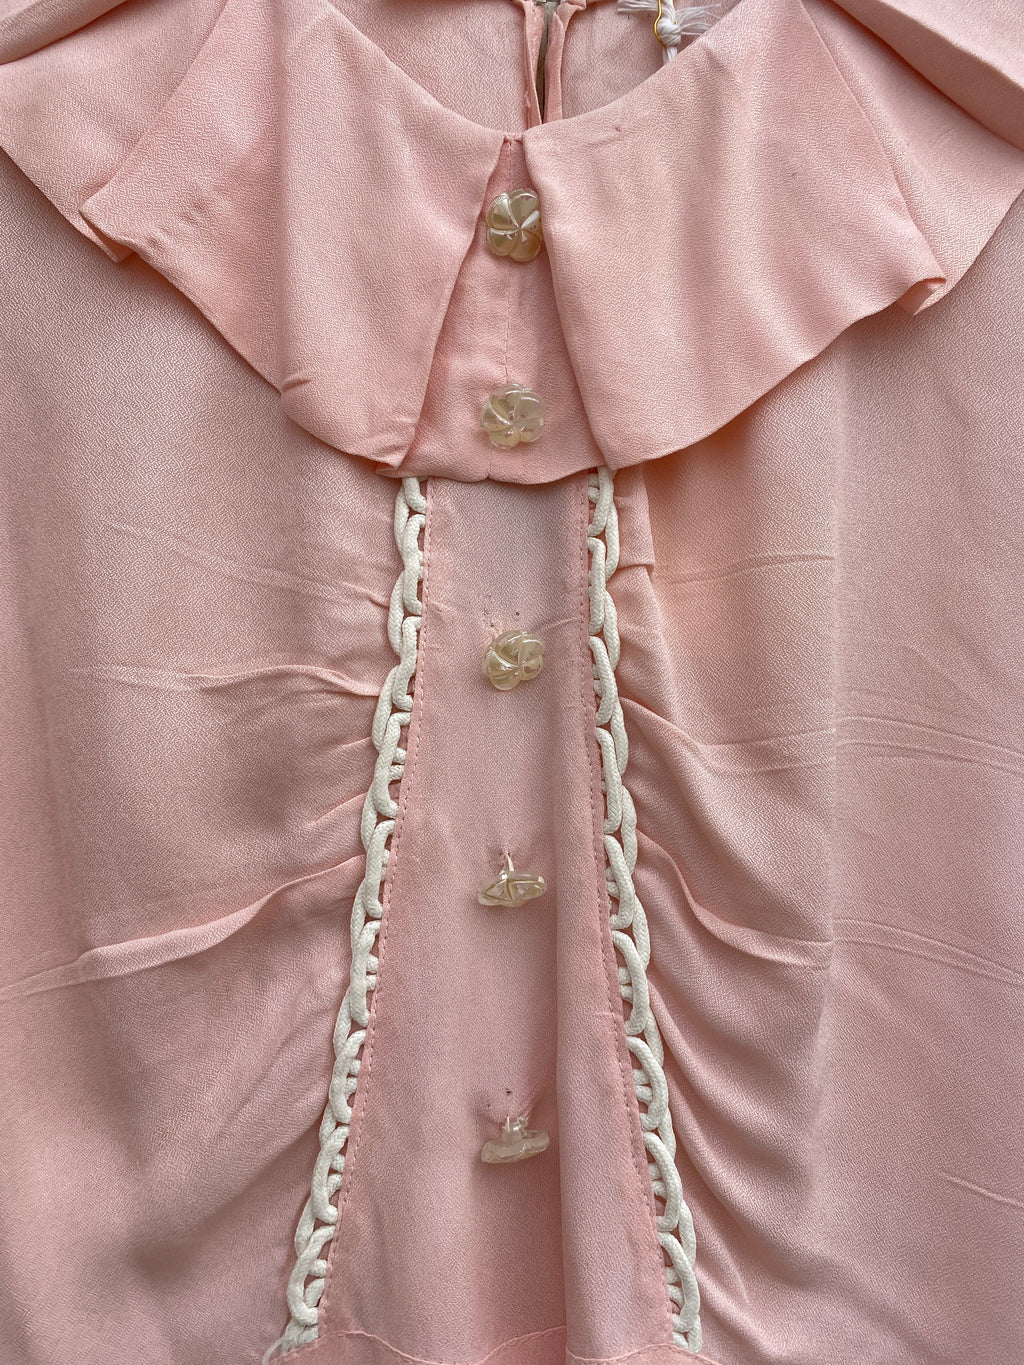 Vintage Pink Button Blouse